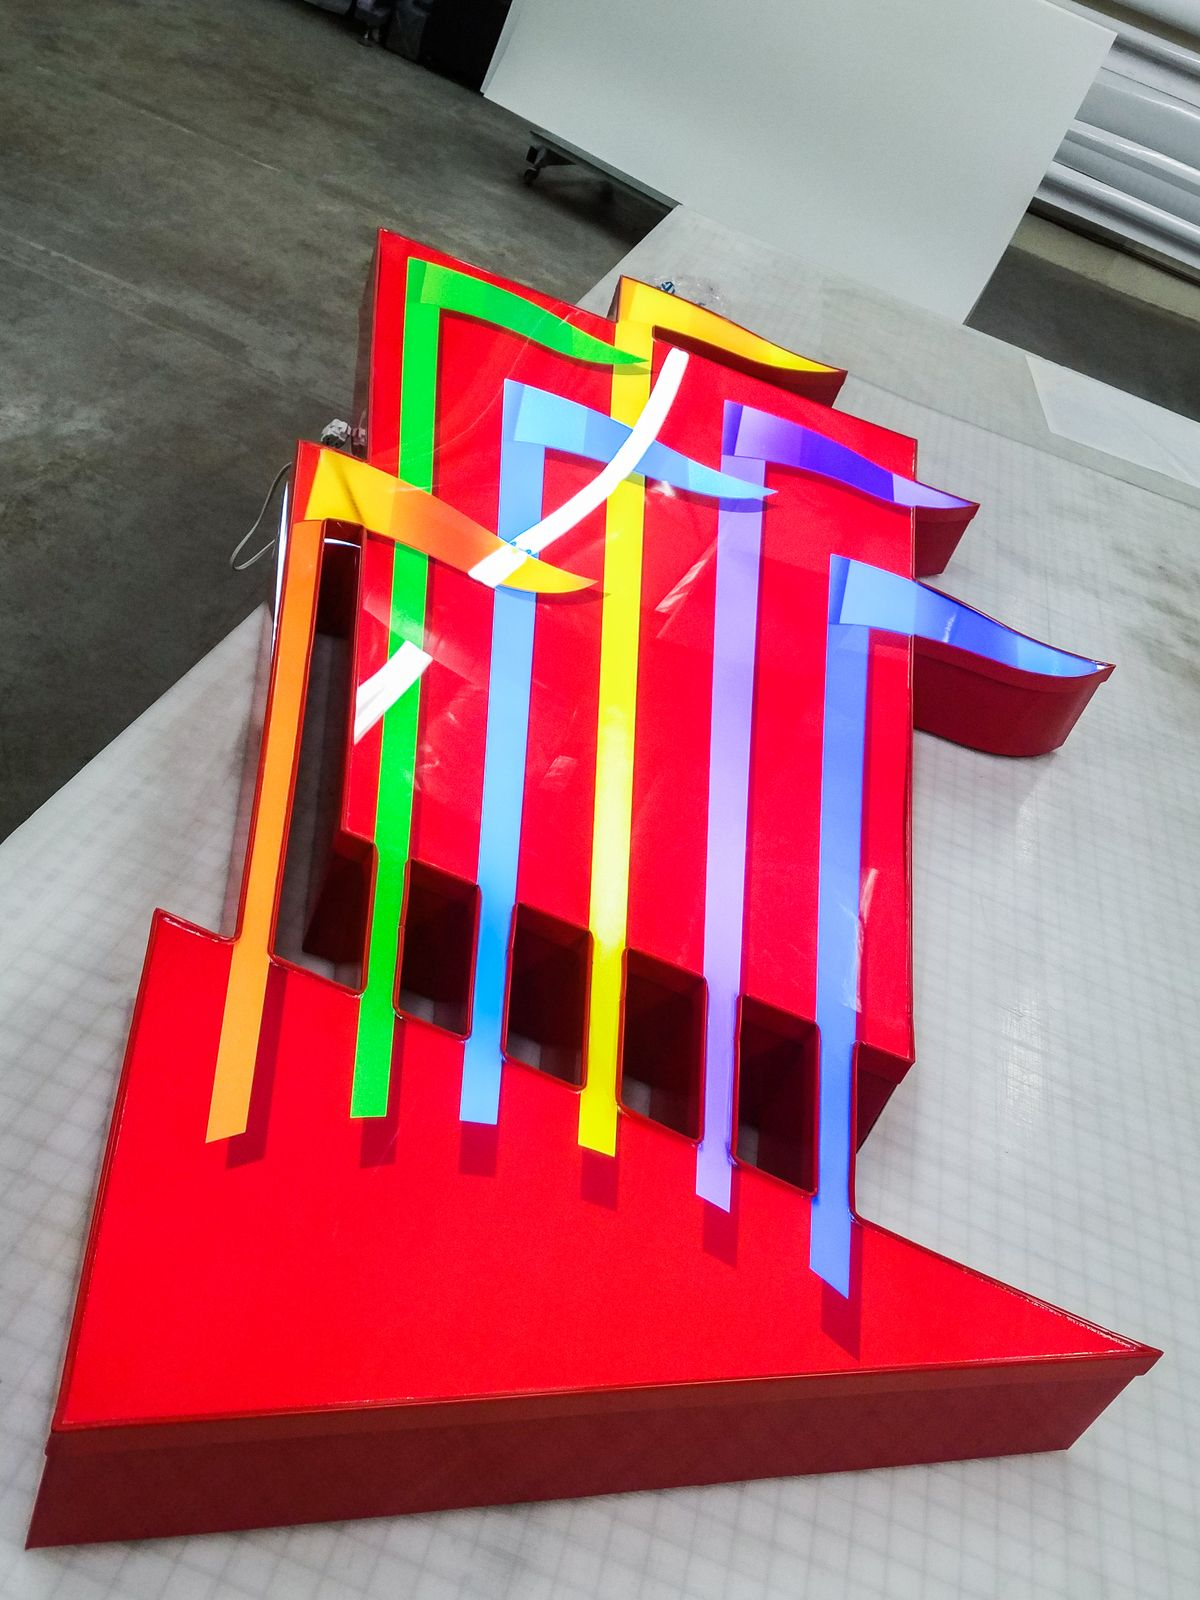 Six Flags custom light box logo sign made of acrylic and aluminum for theme park branding